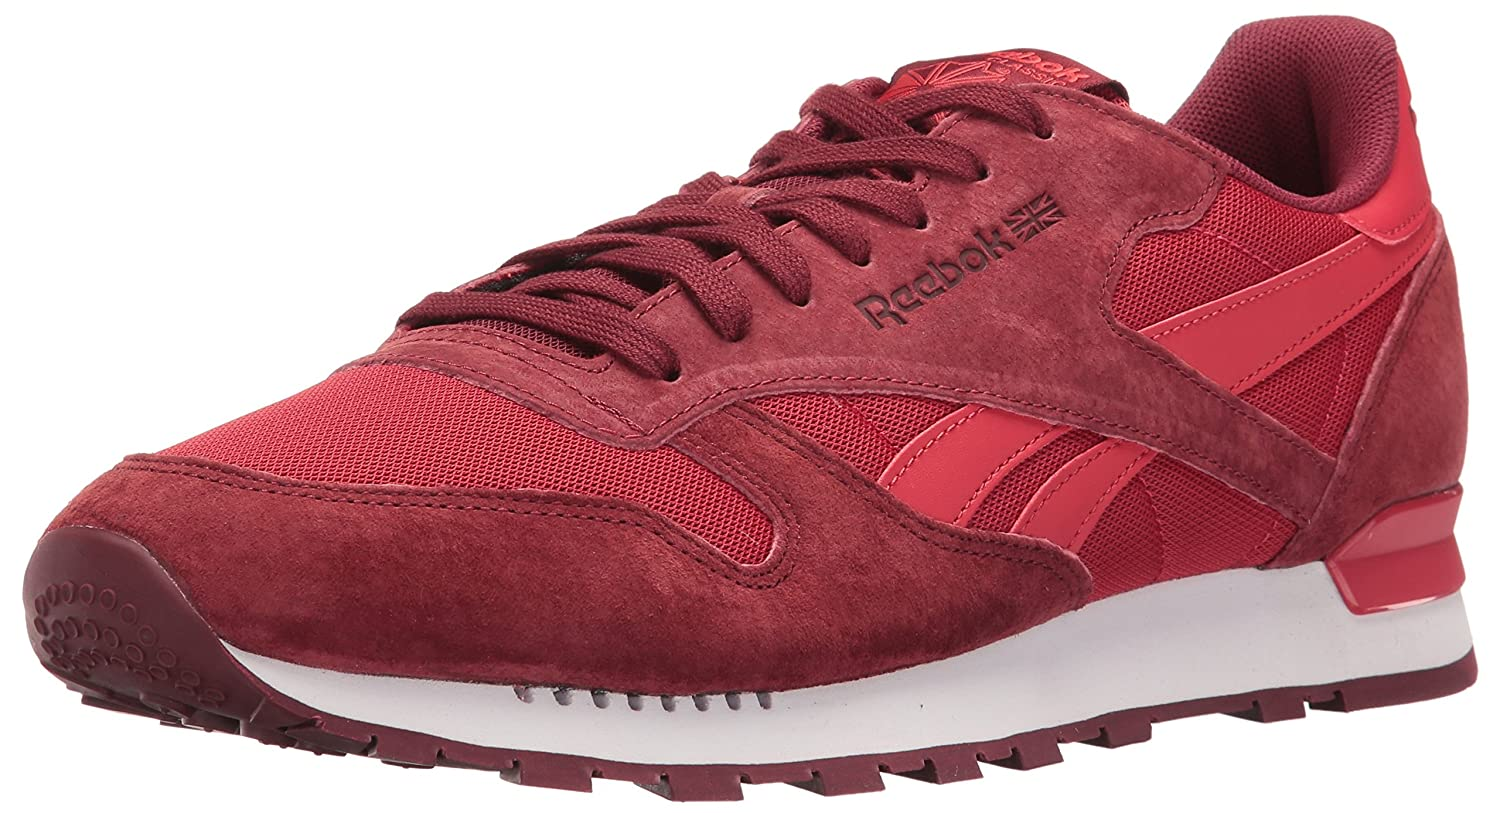 Reebok Men s CL Leather Clip Ele Fashion Sneaker Flash Red 9 DM US Buy  Online at Low Prices in India  Amazonin